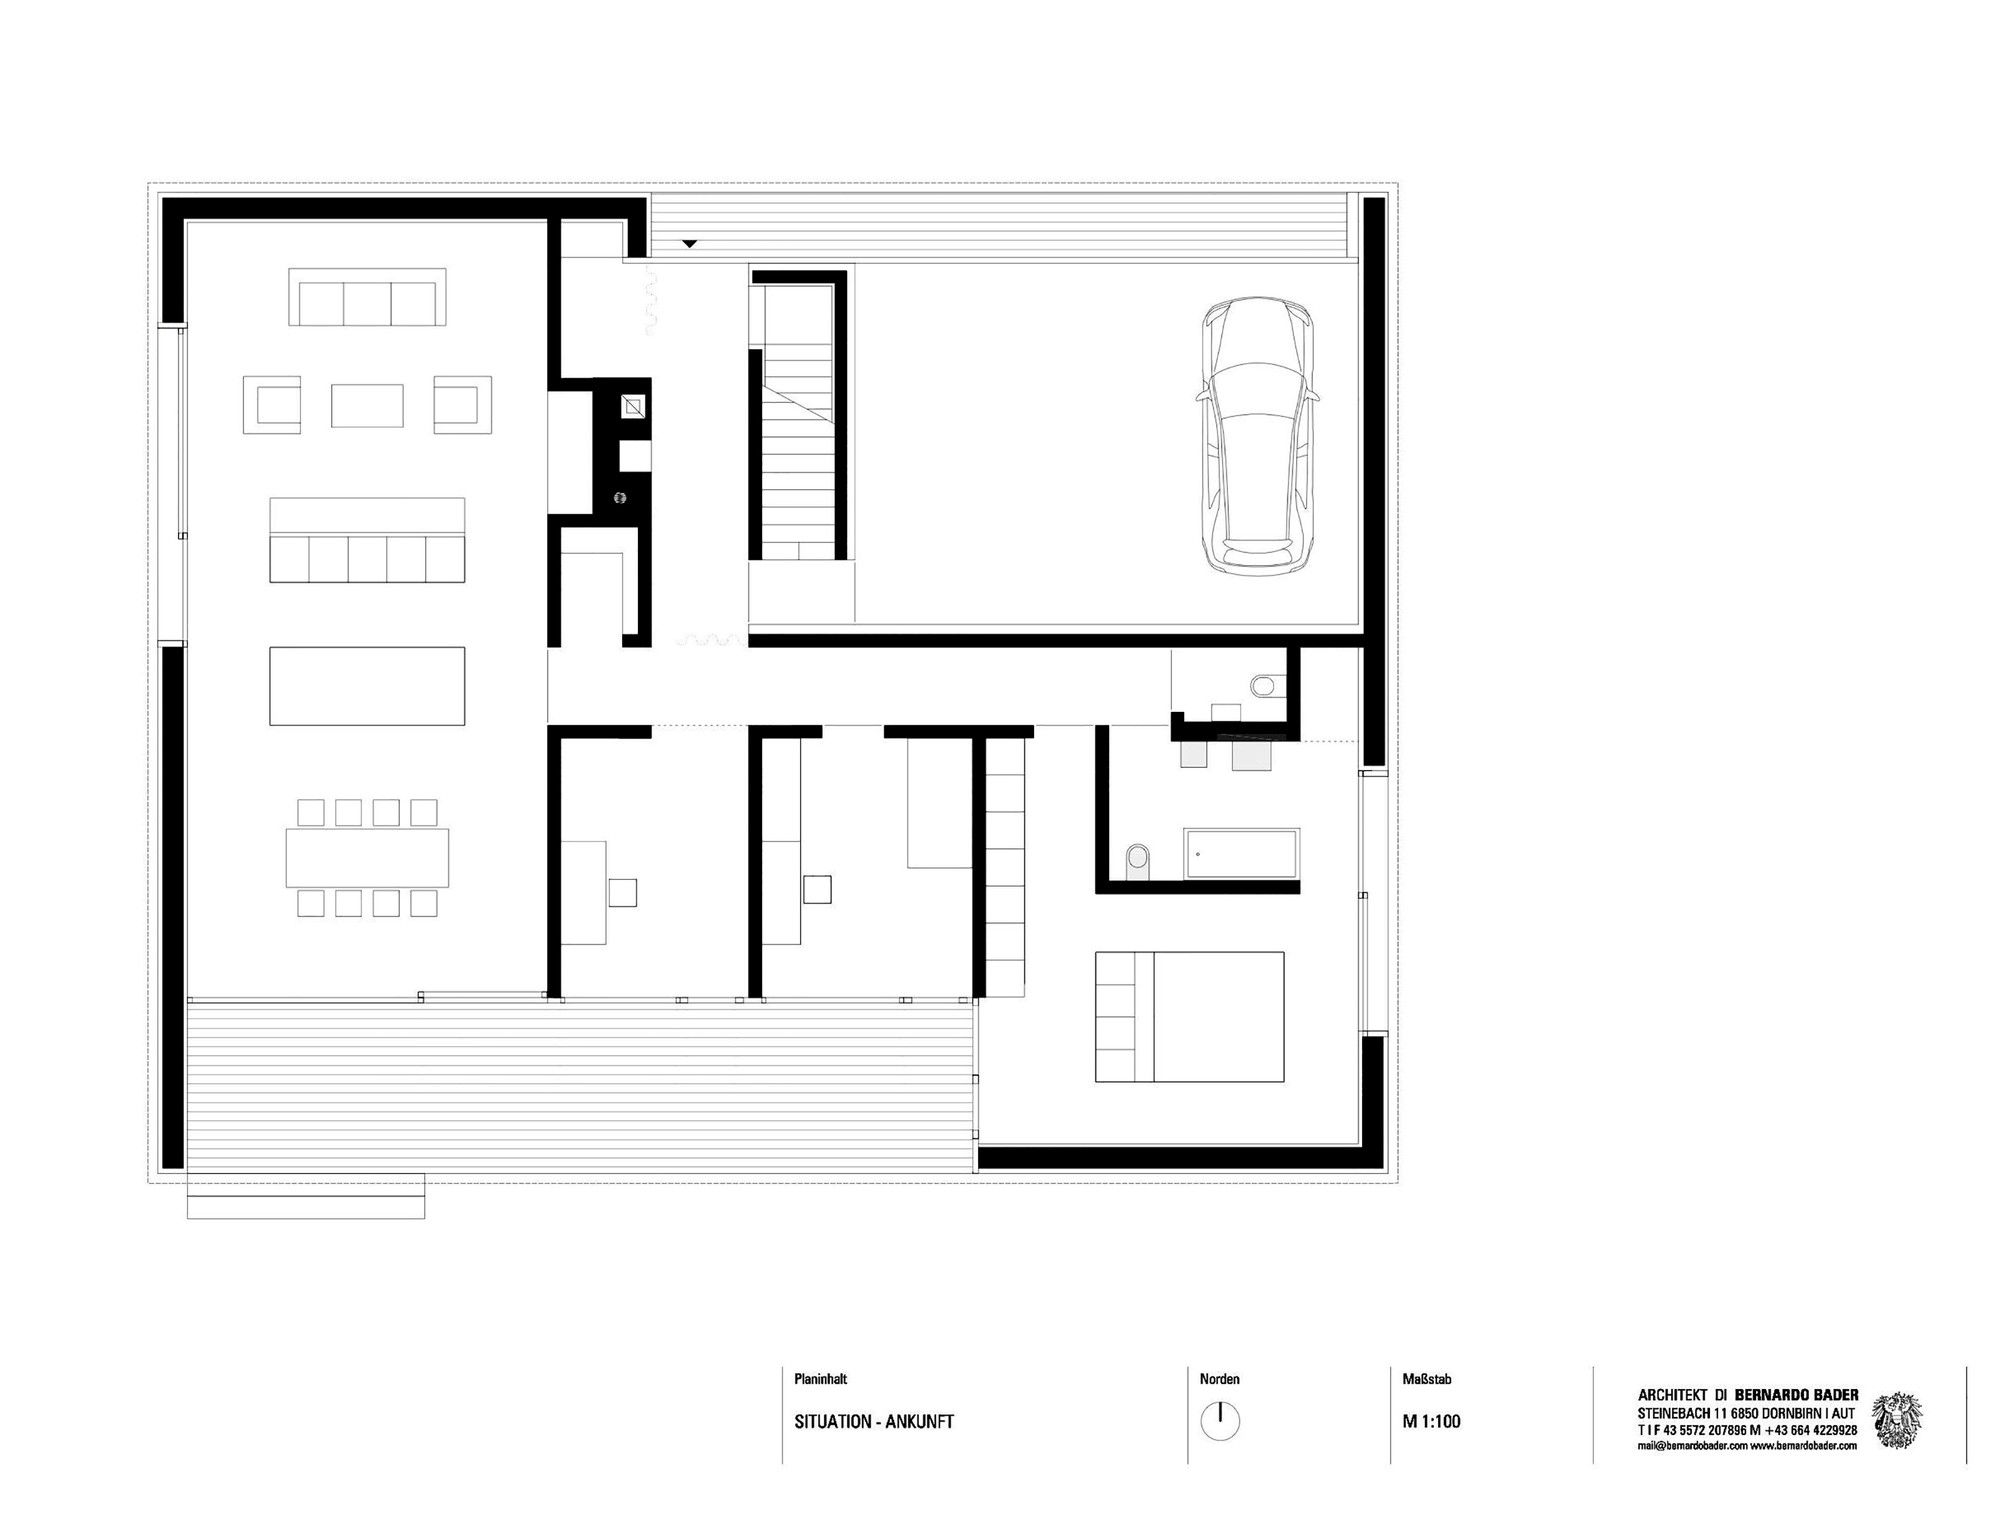 Gallery of haus kaltschmieden bernardo bader architects for Haus plan